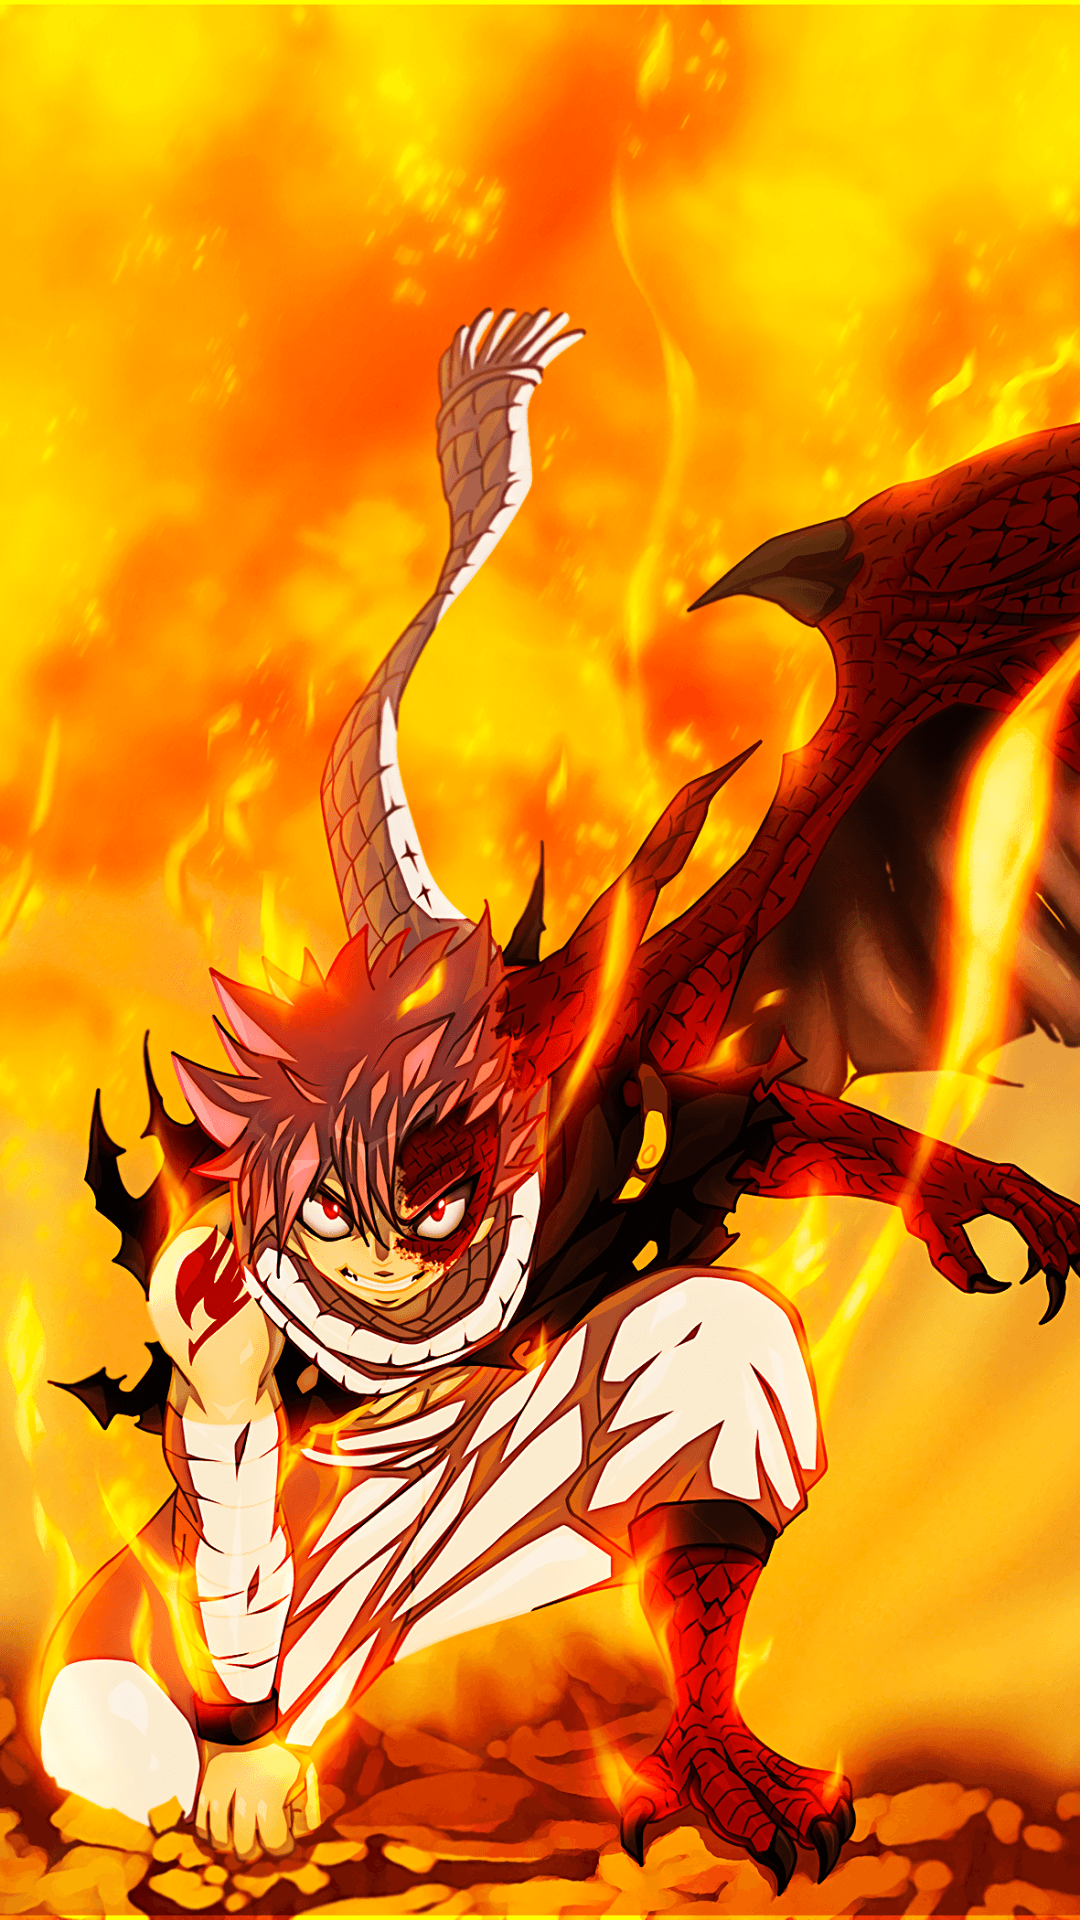 Fairy Tail Iphone Wallpapers Top Free Fairy Tail Iphone